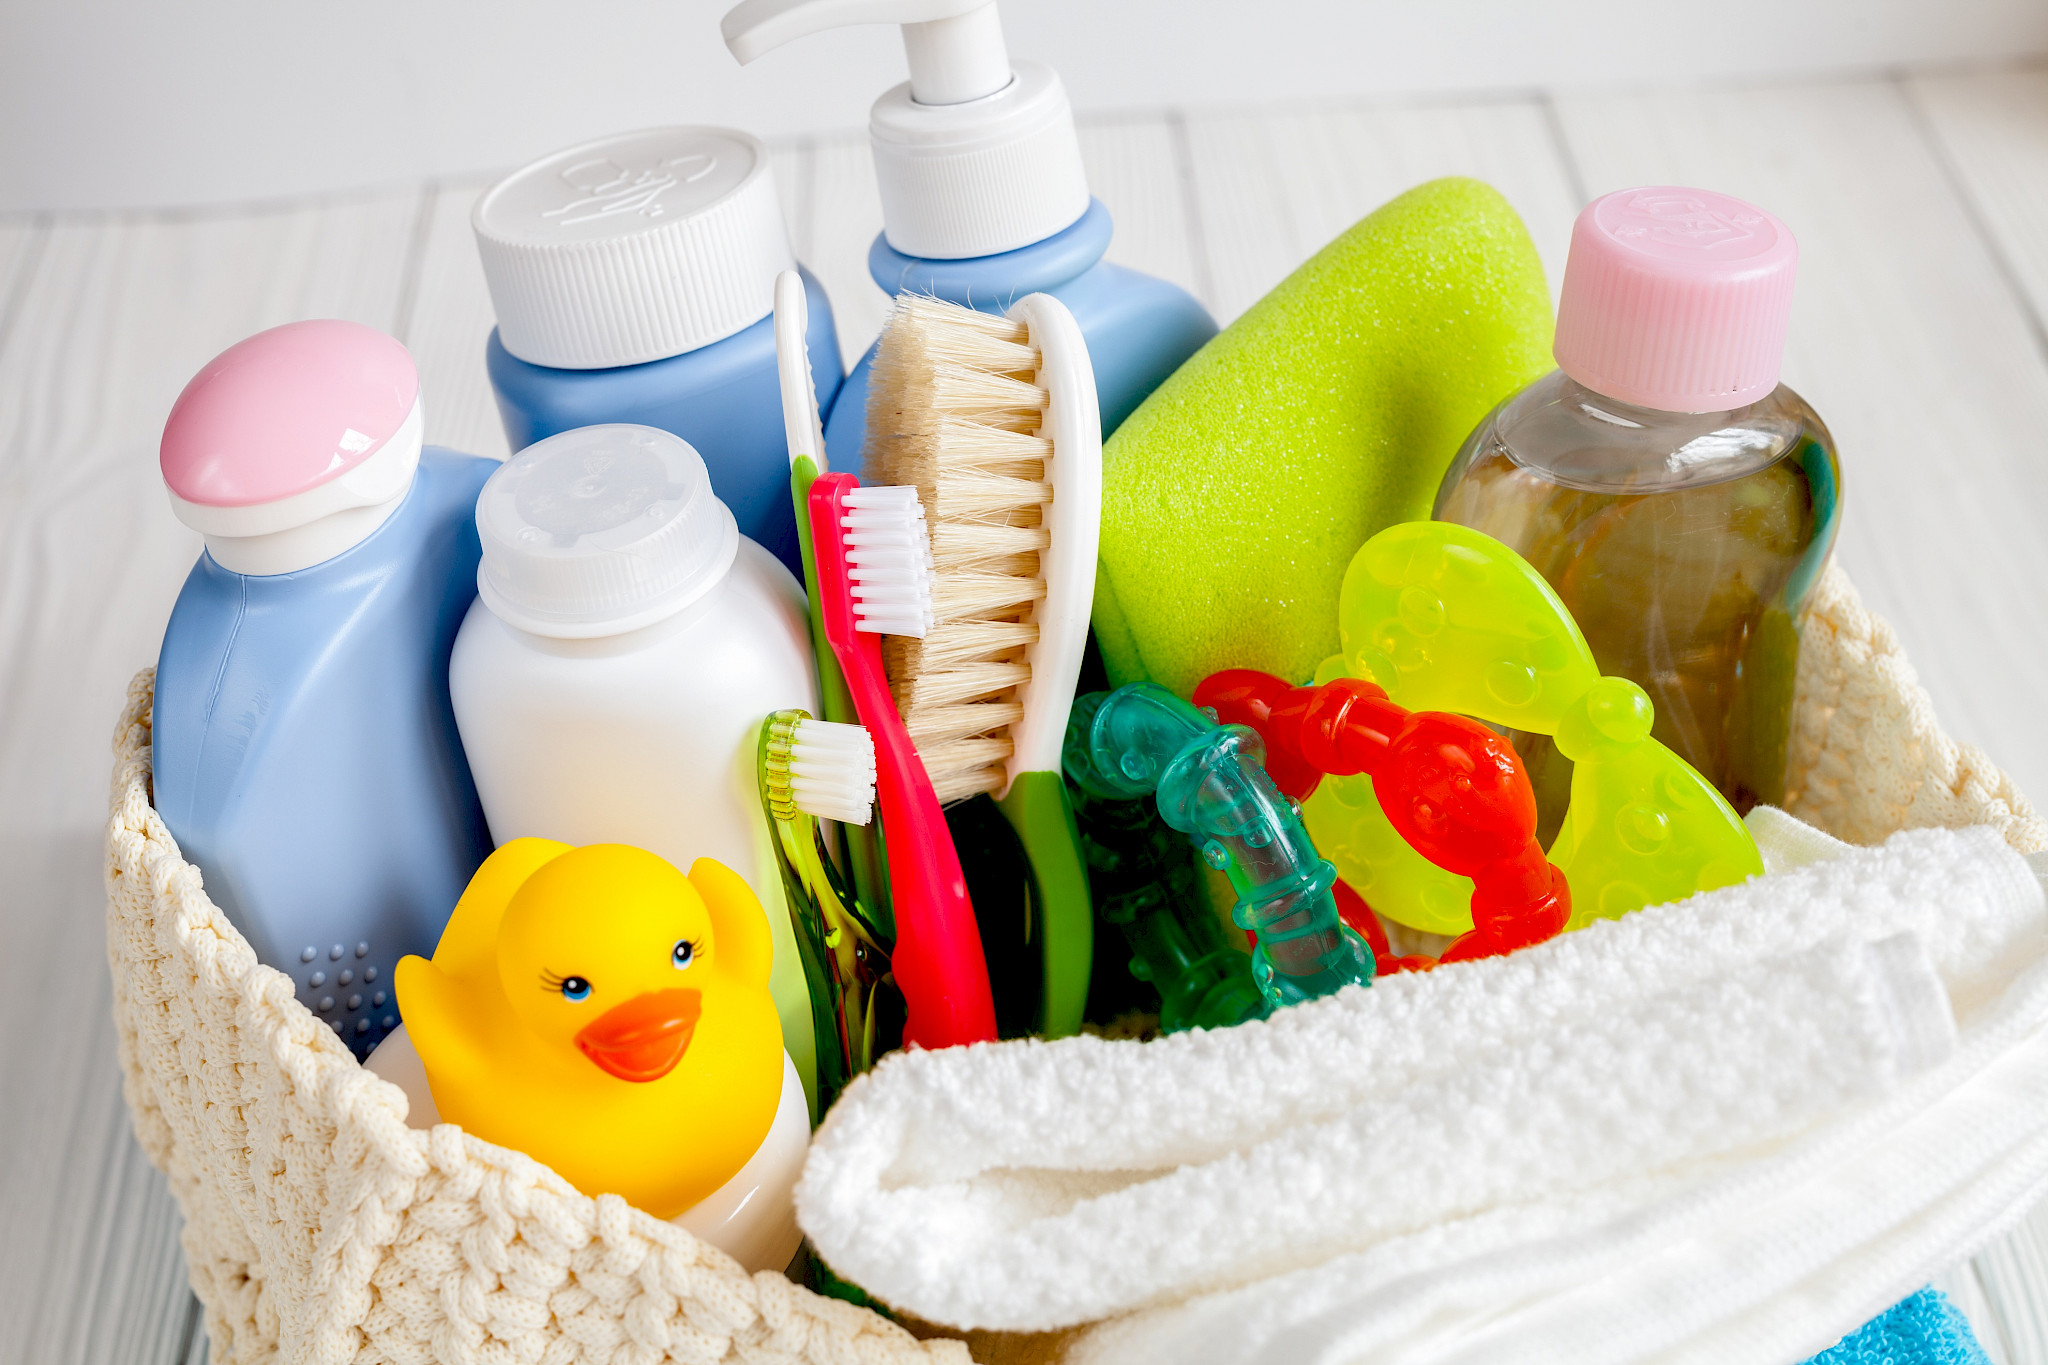 Various commodities in a basket (shampoo, toothbrush, toys)